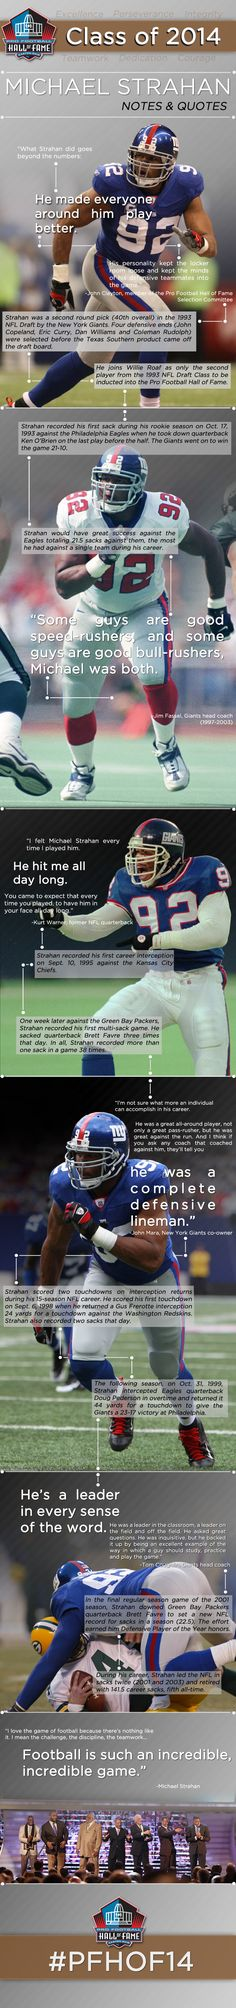 [Infographic] Notes & Quotes from Michael Strahan's Pro Football Hall of Fame career with the New York New York Giants Football, Nfl Football, Football Season, Fame Game, Baltimore Colts, Michael Strahan, Hometown Heroes, Football Quotes, Football Hall Of Fame